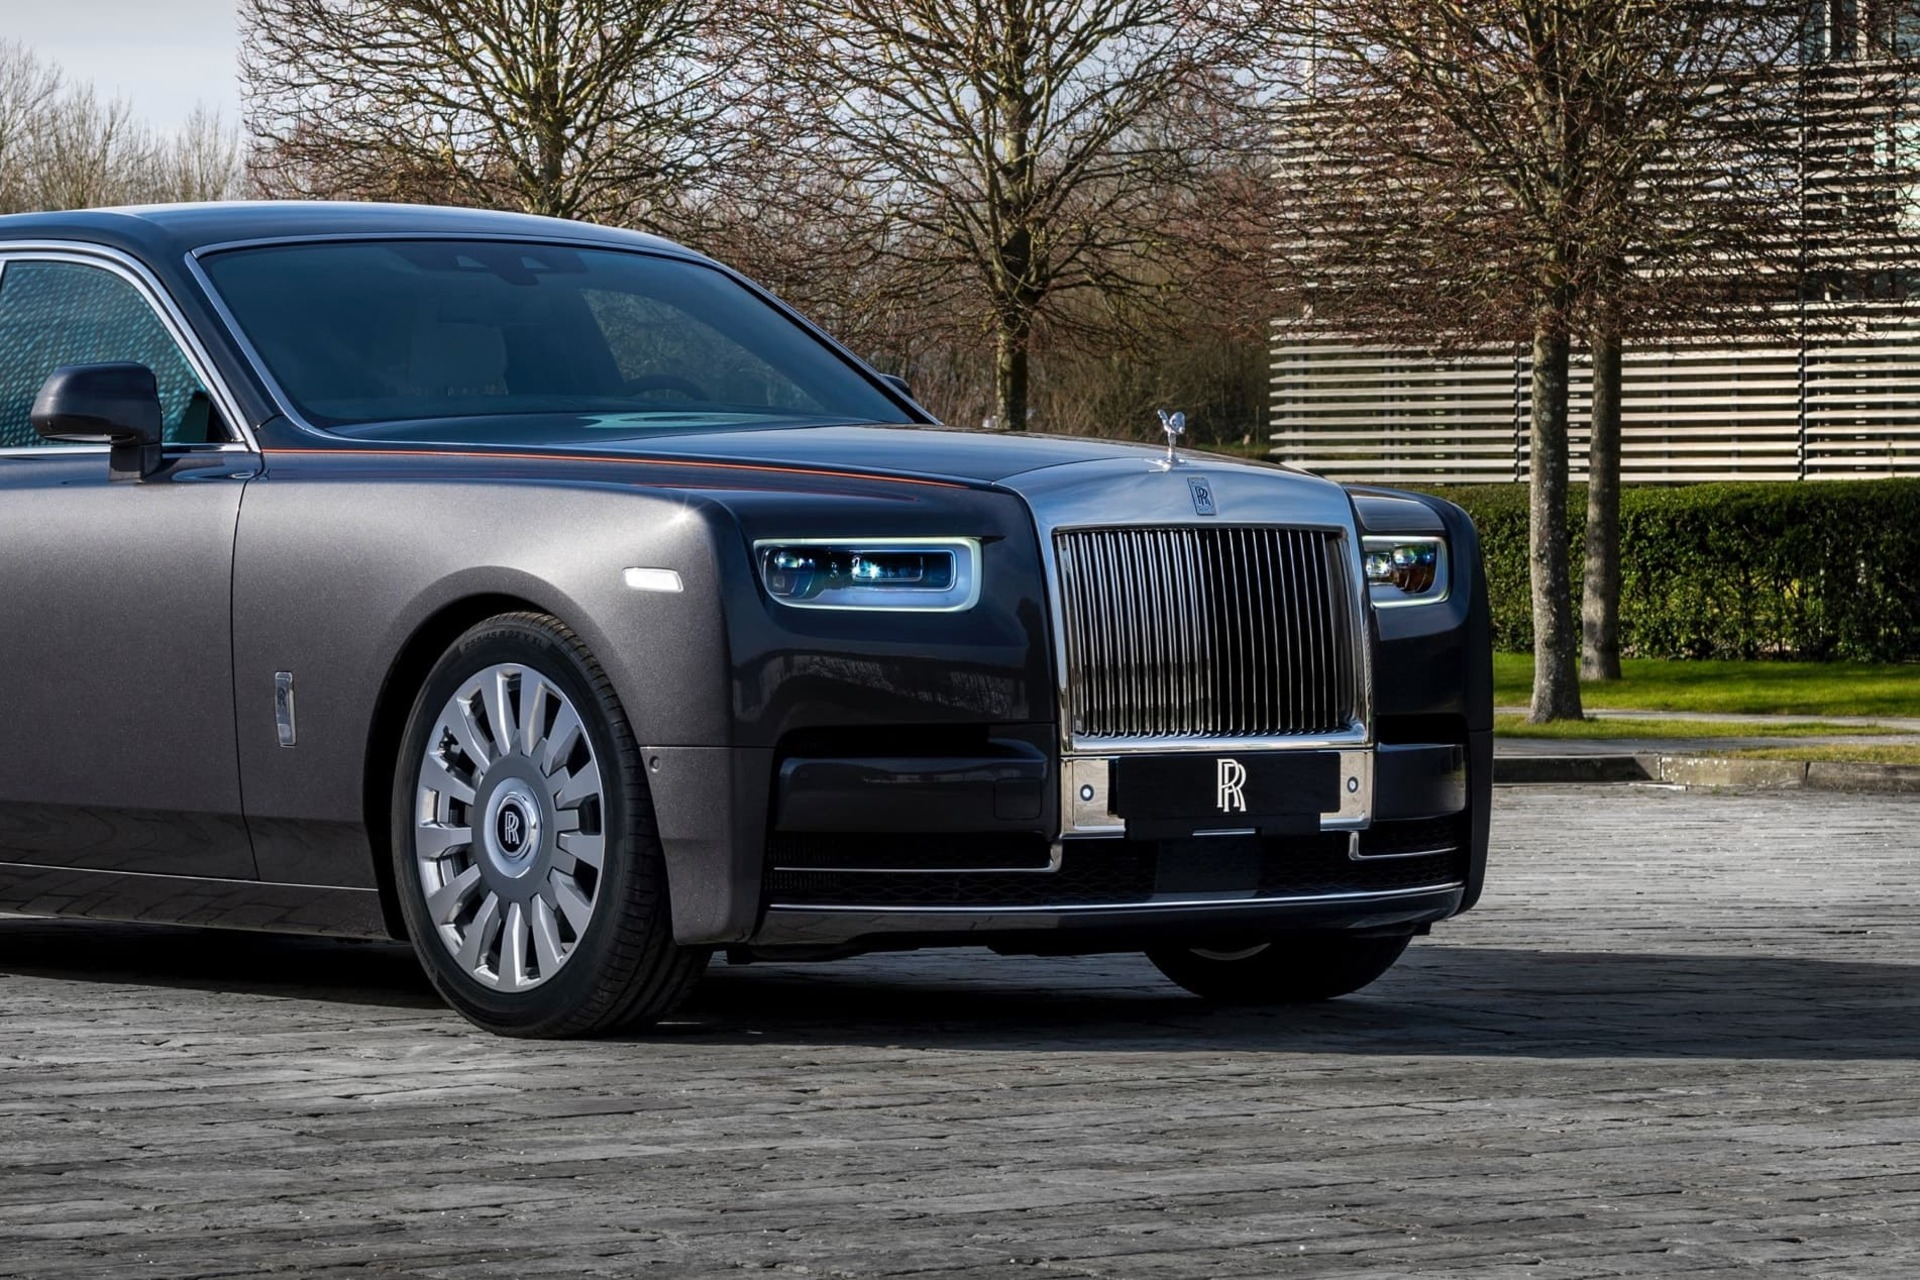 Front exterior shot of Rolls-Royce Gunmetal Phantom